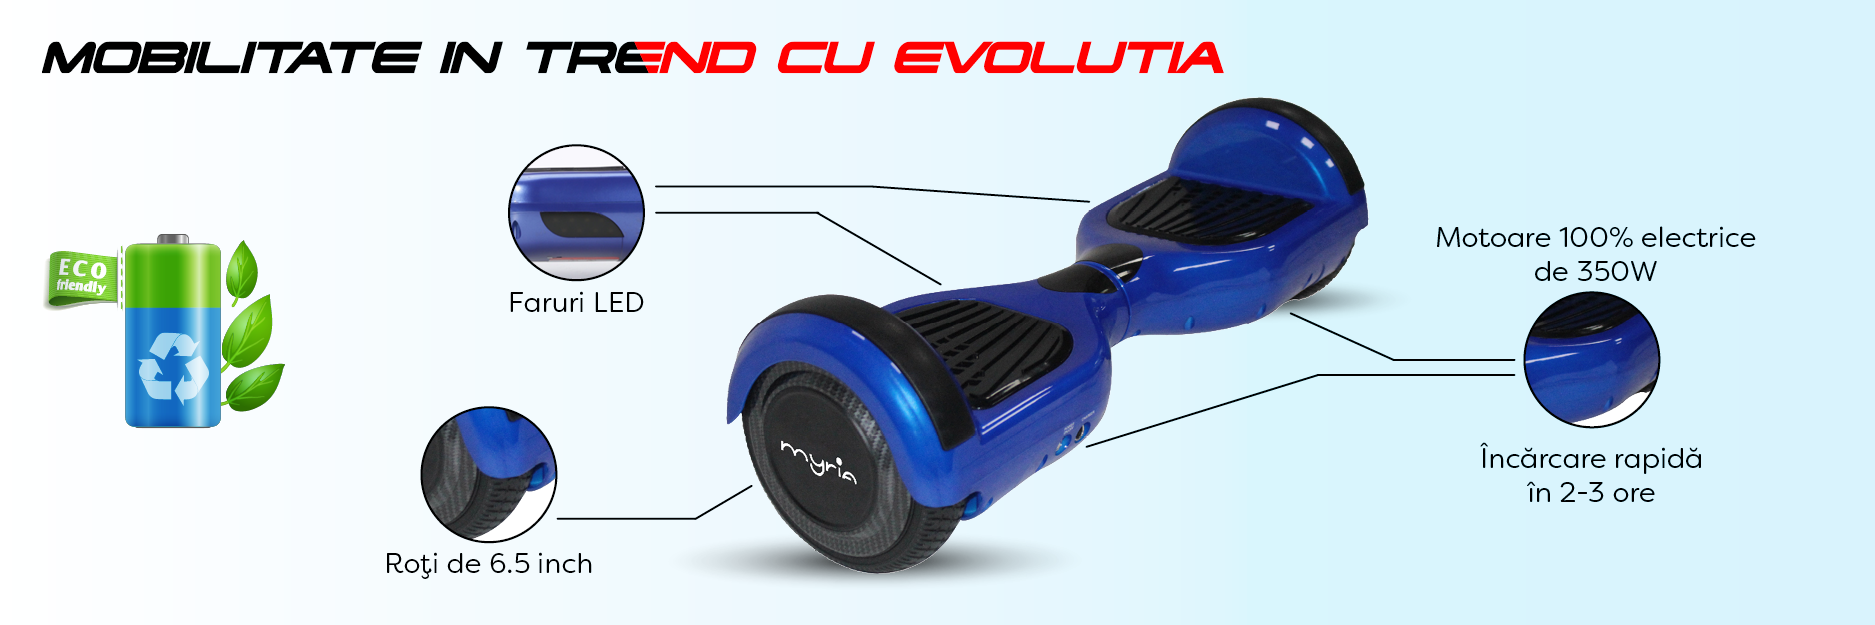 Bannere_hoverboard-uri_0032.png